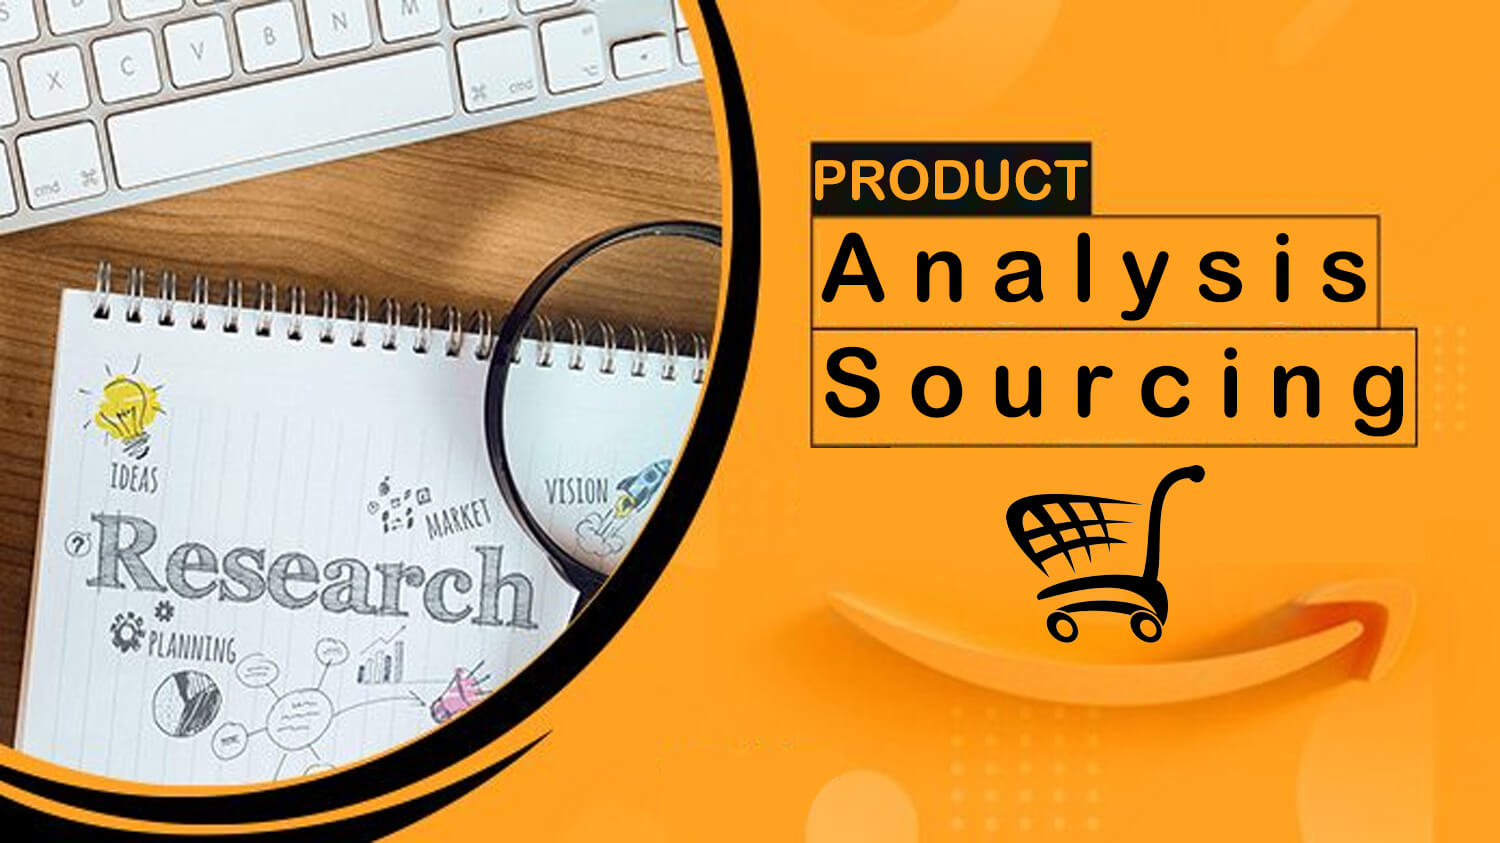 Product Analysis and Sourcing